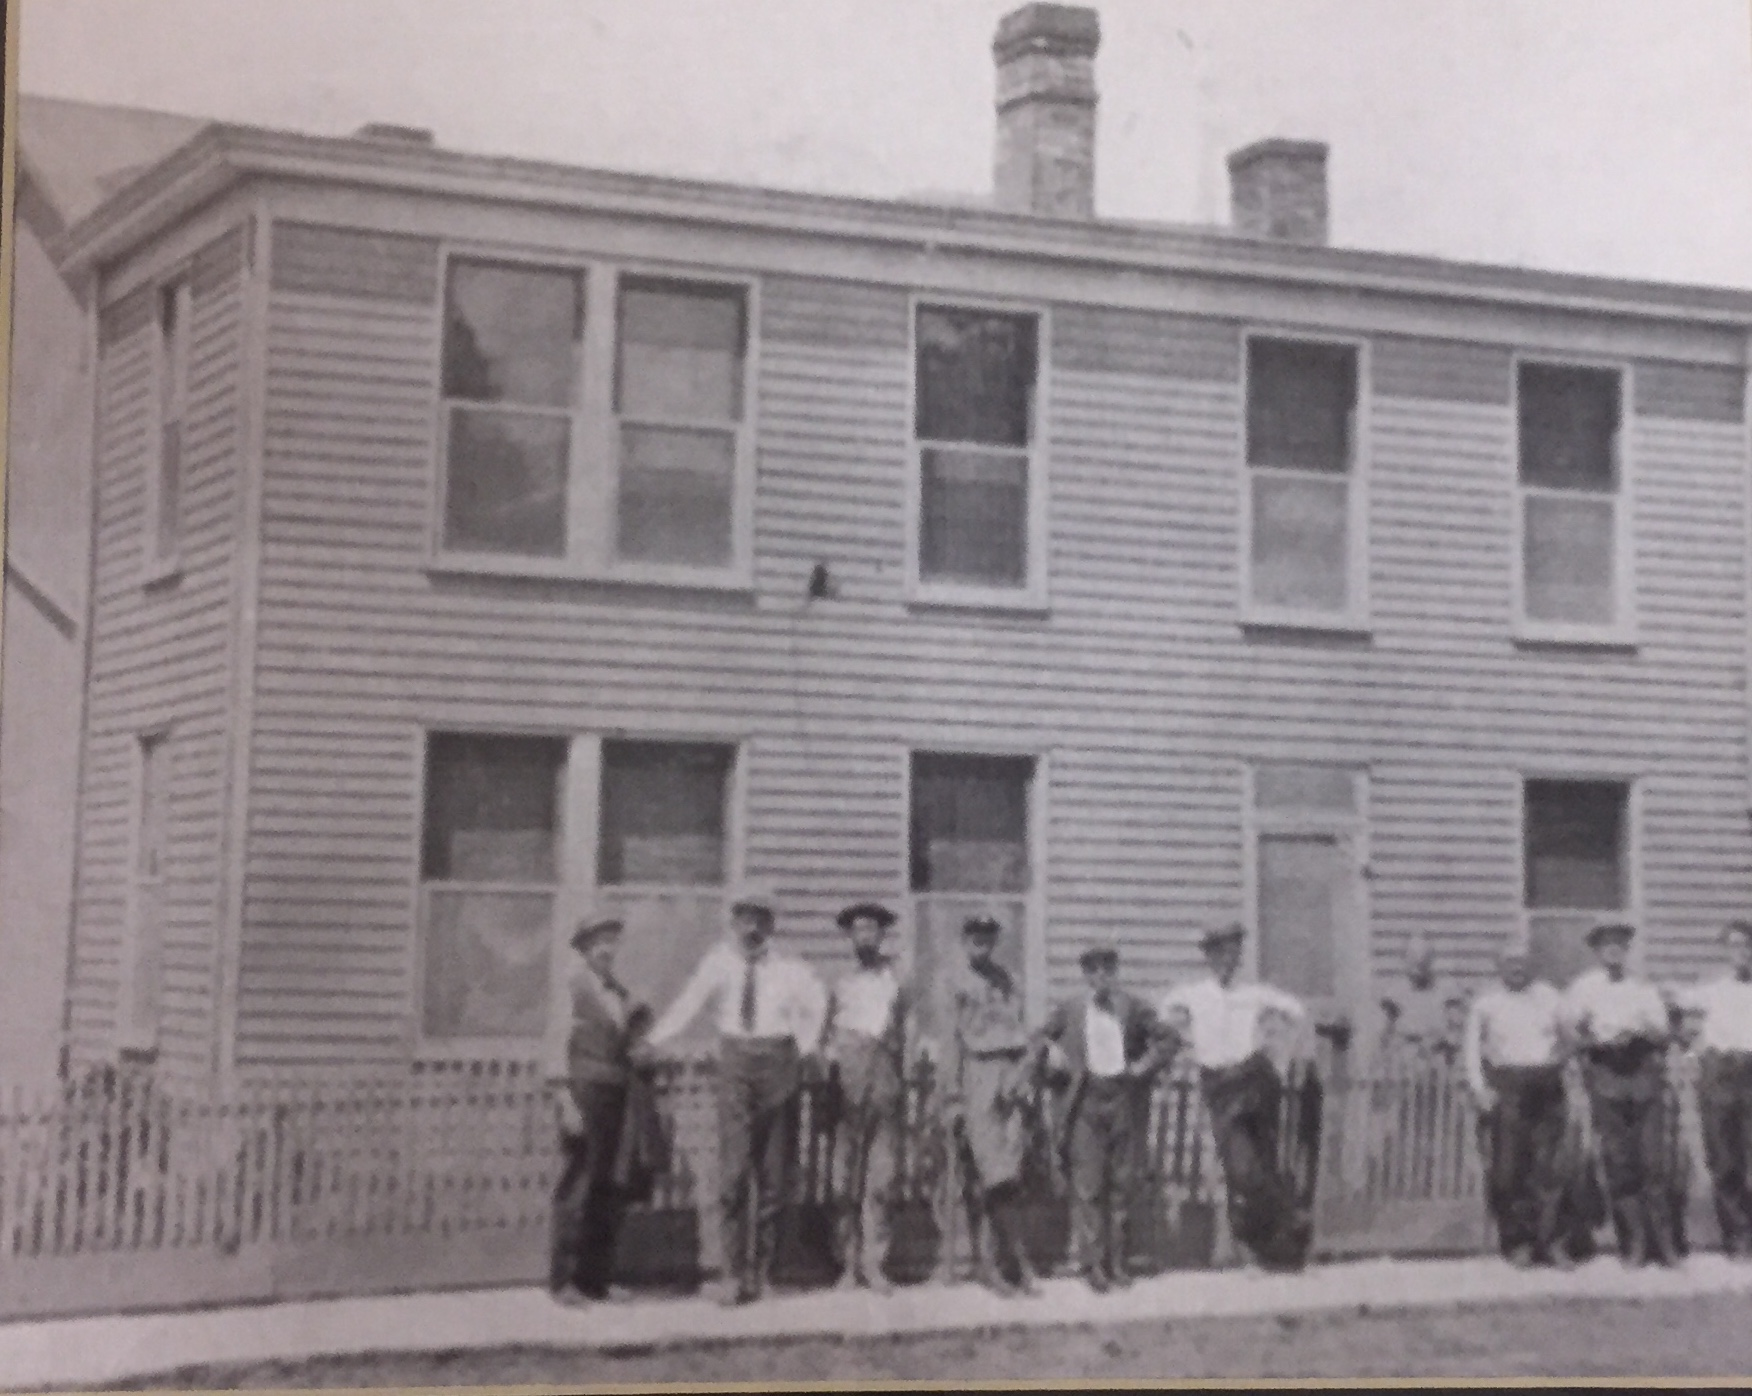 Facts & History - Campbell County Detention Center